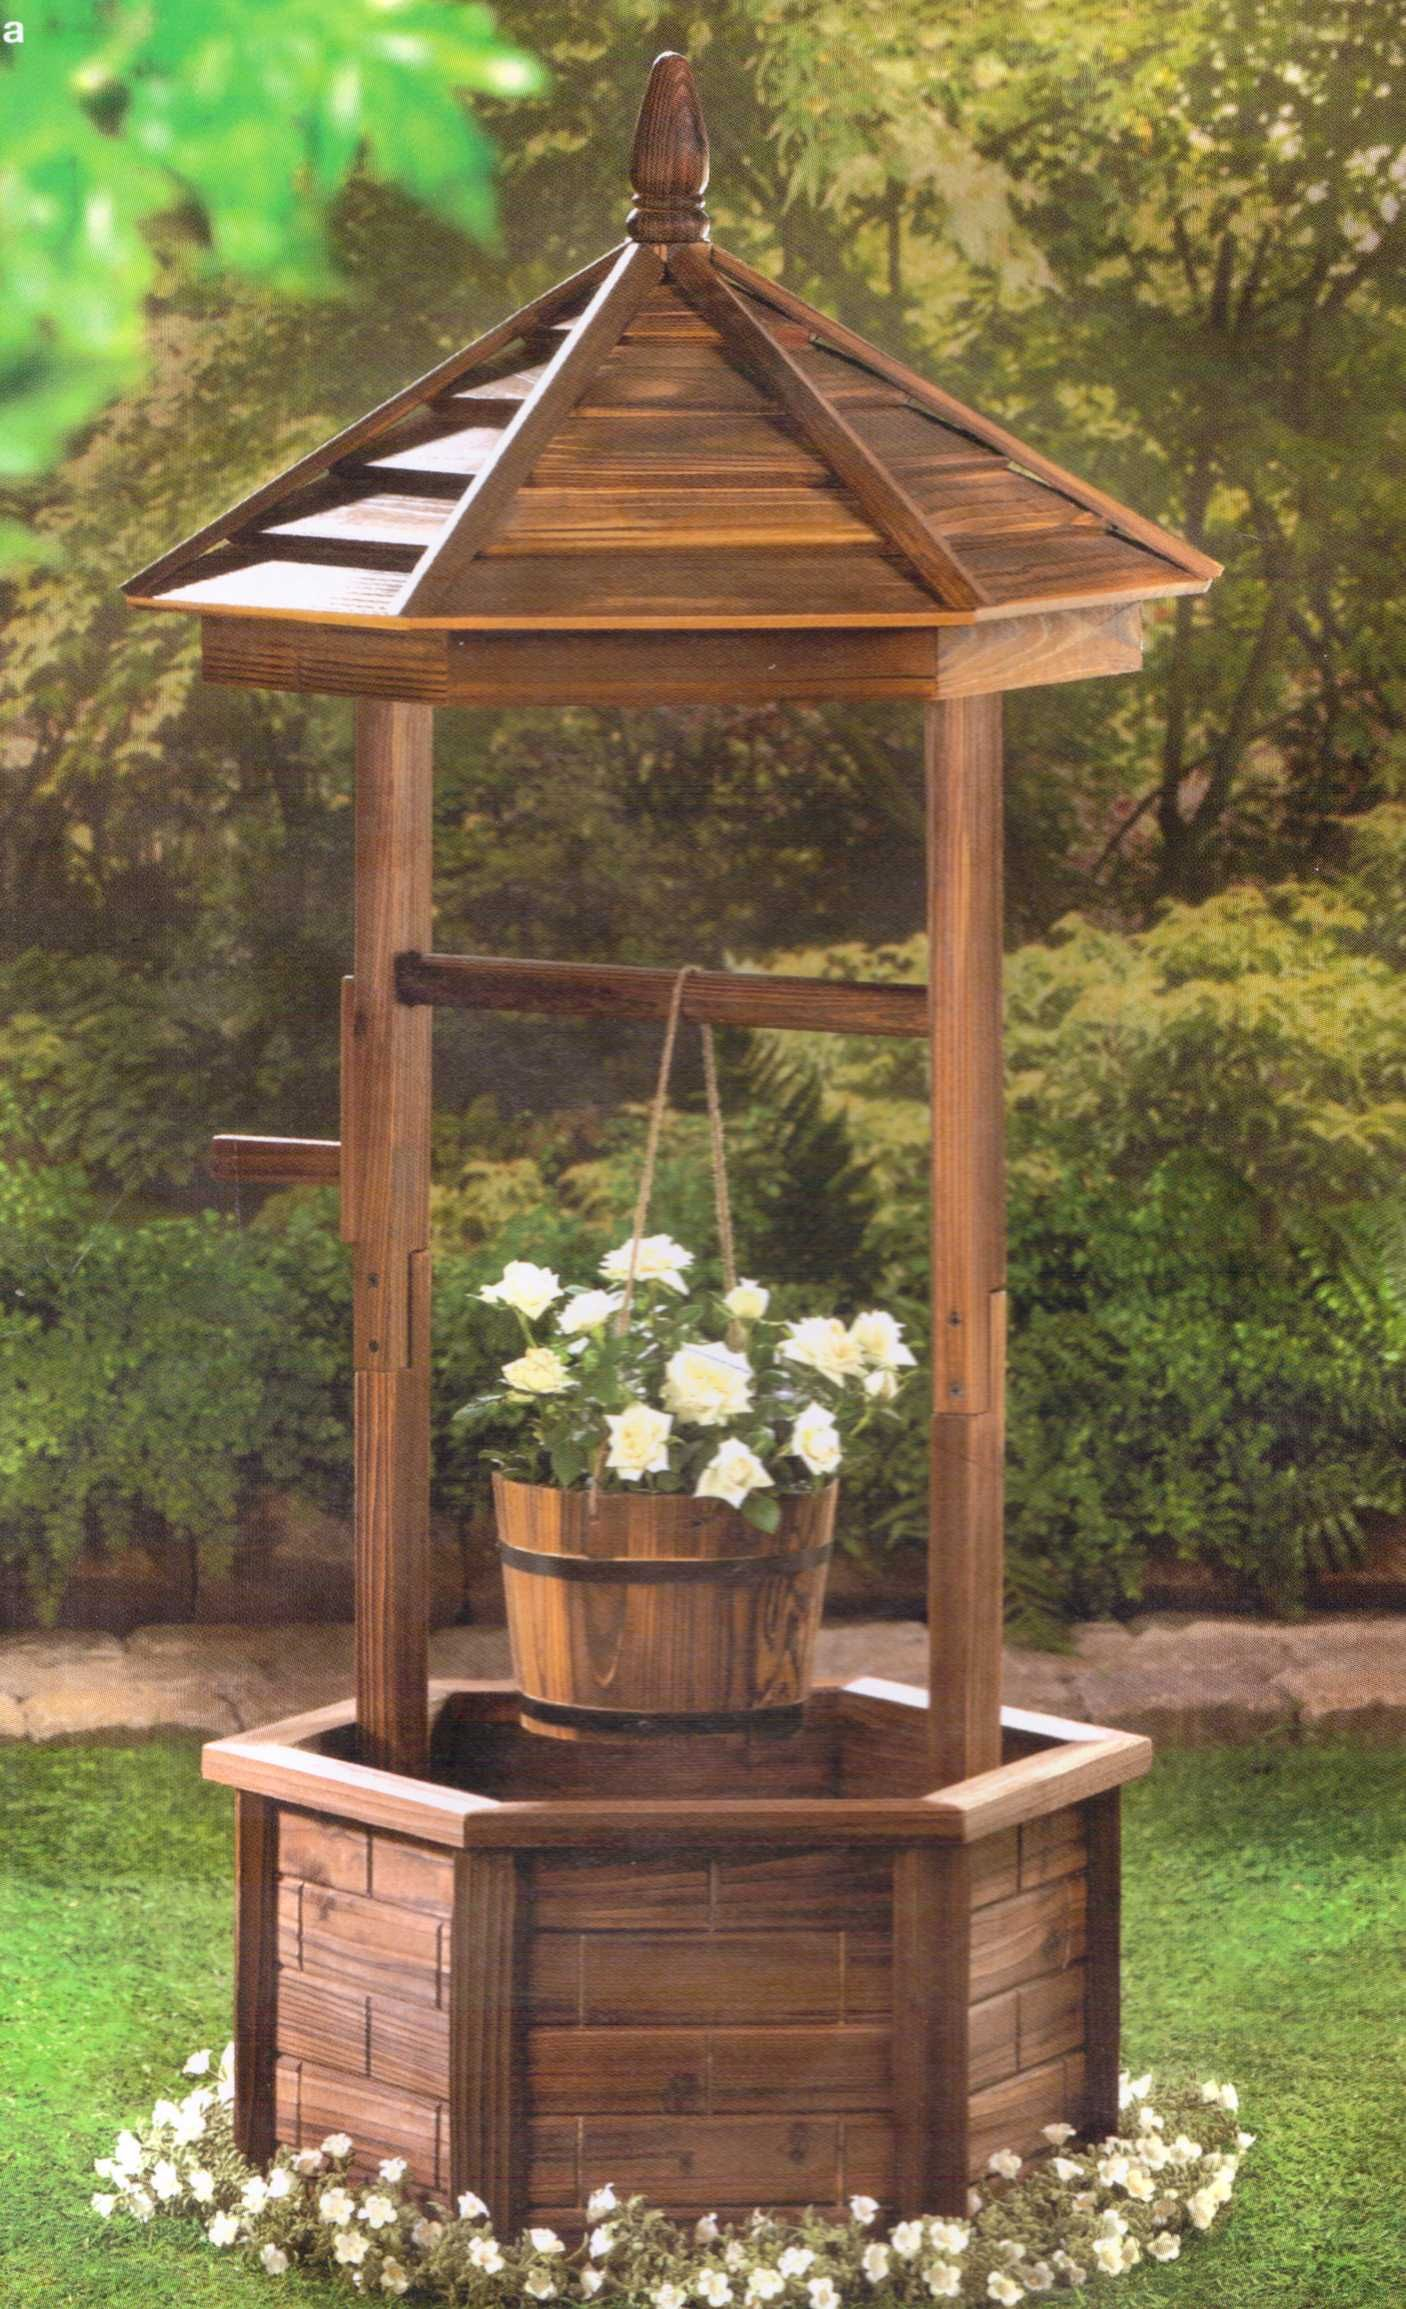 Rustic Wooden Garden Wells Gardening Flower And Vegetables